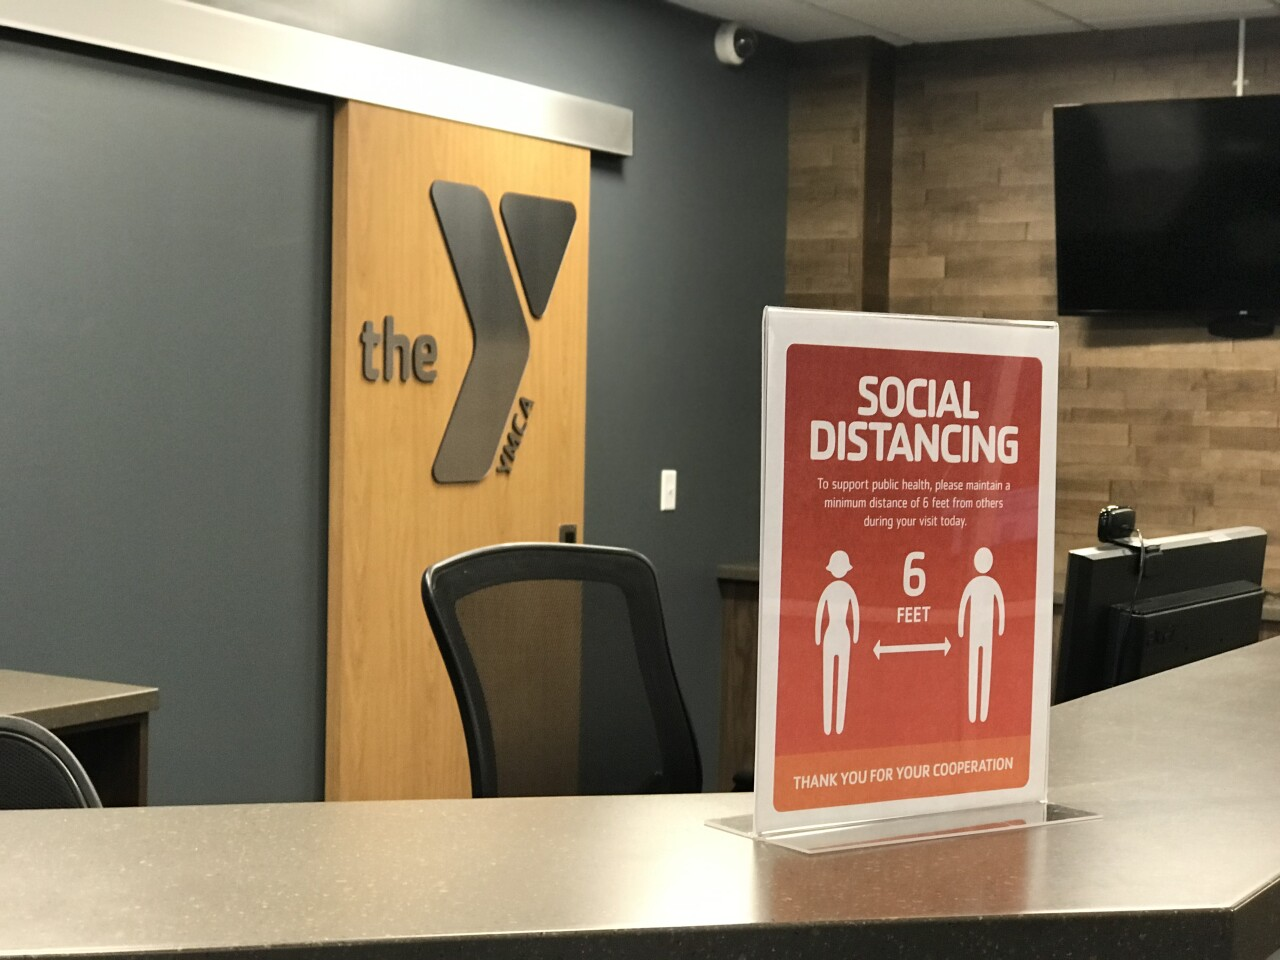 Signs promote social distancing at the YMCA